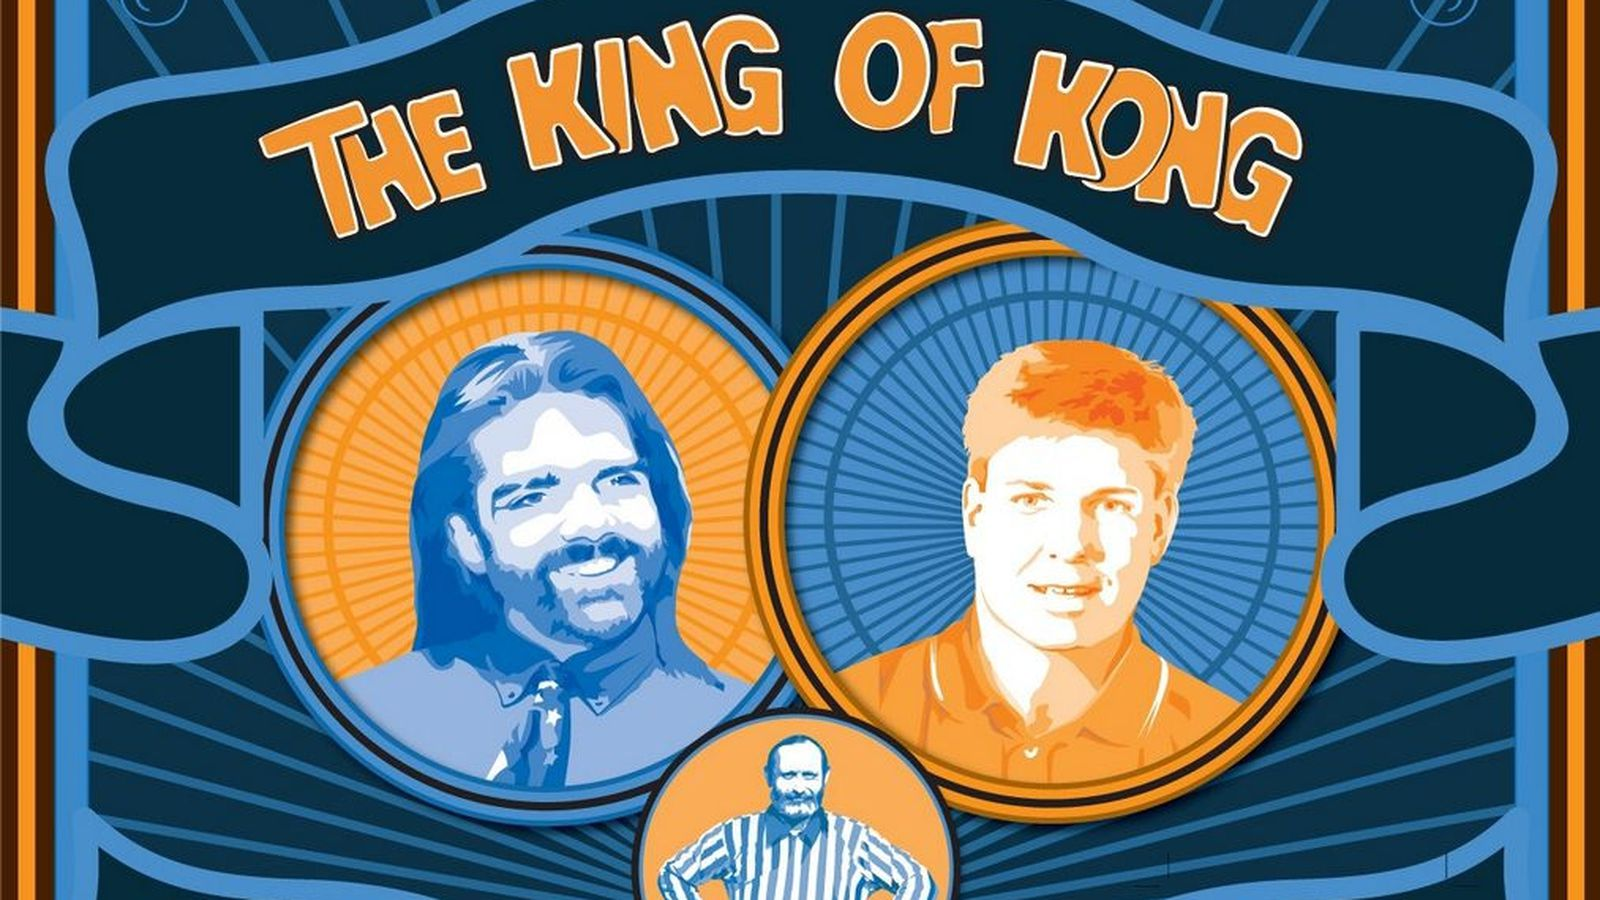 'King of Kong' will be a musical, says director